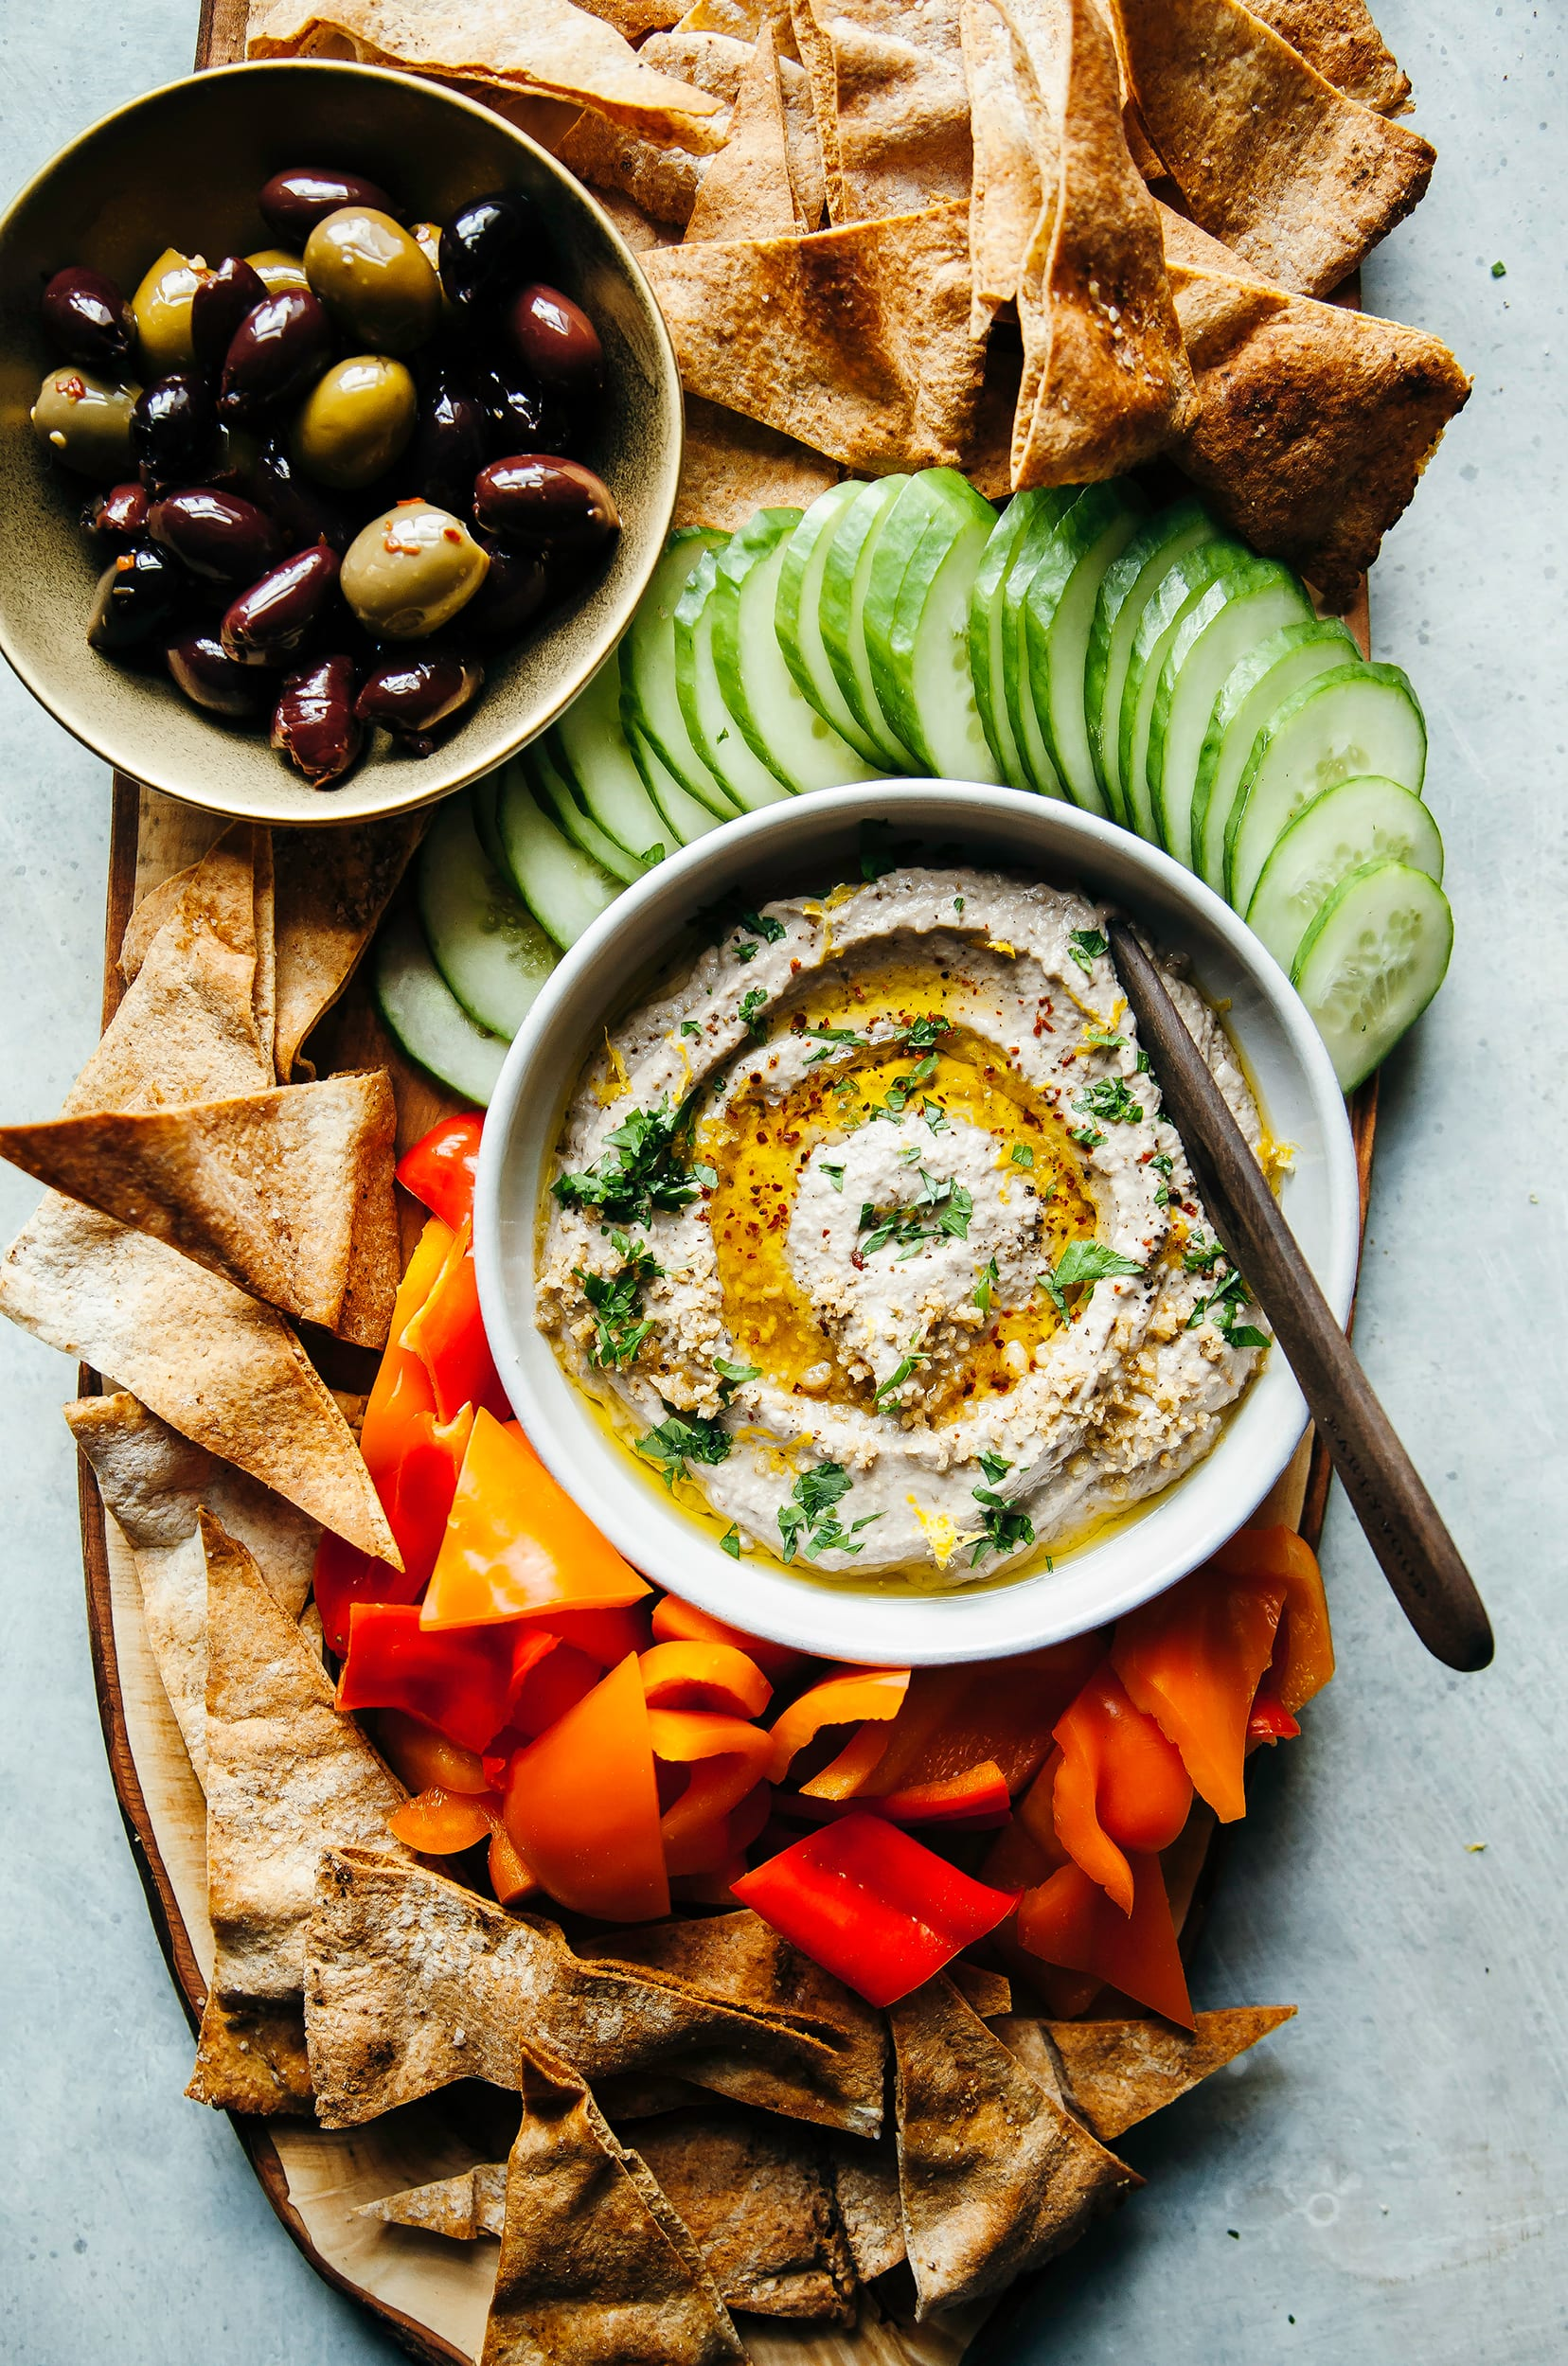 Image shows a board with a bowl of smooth eggplant dip, chopped vegetables, pita chips and olives.